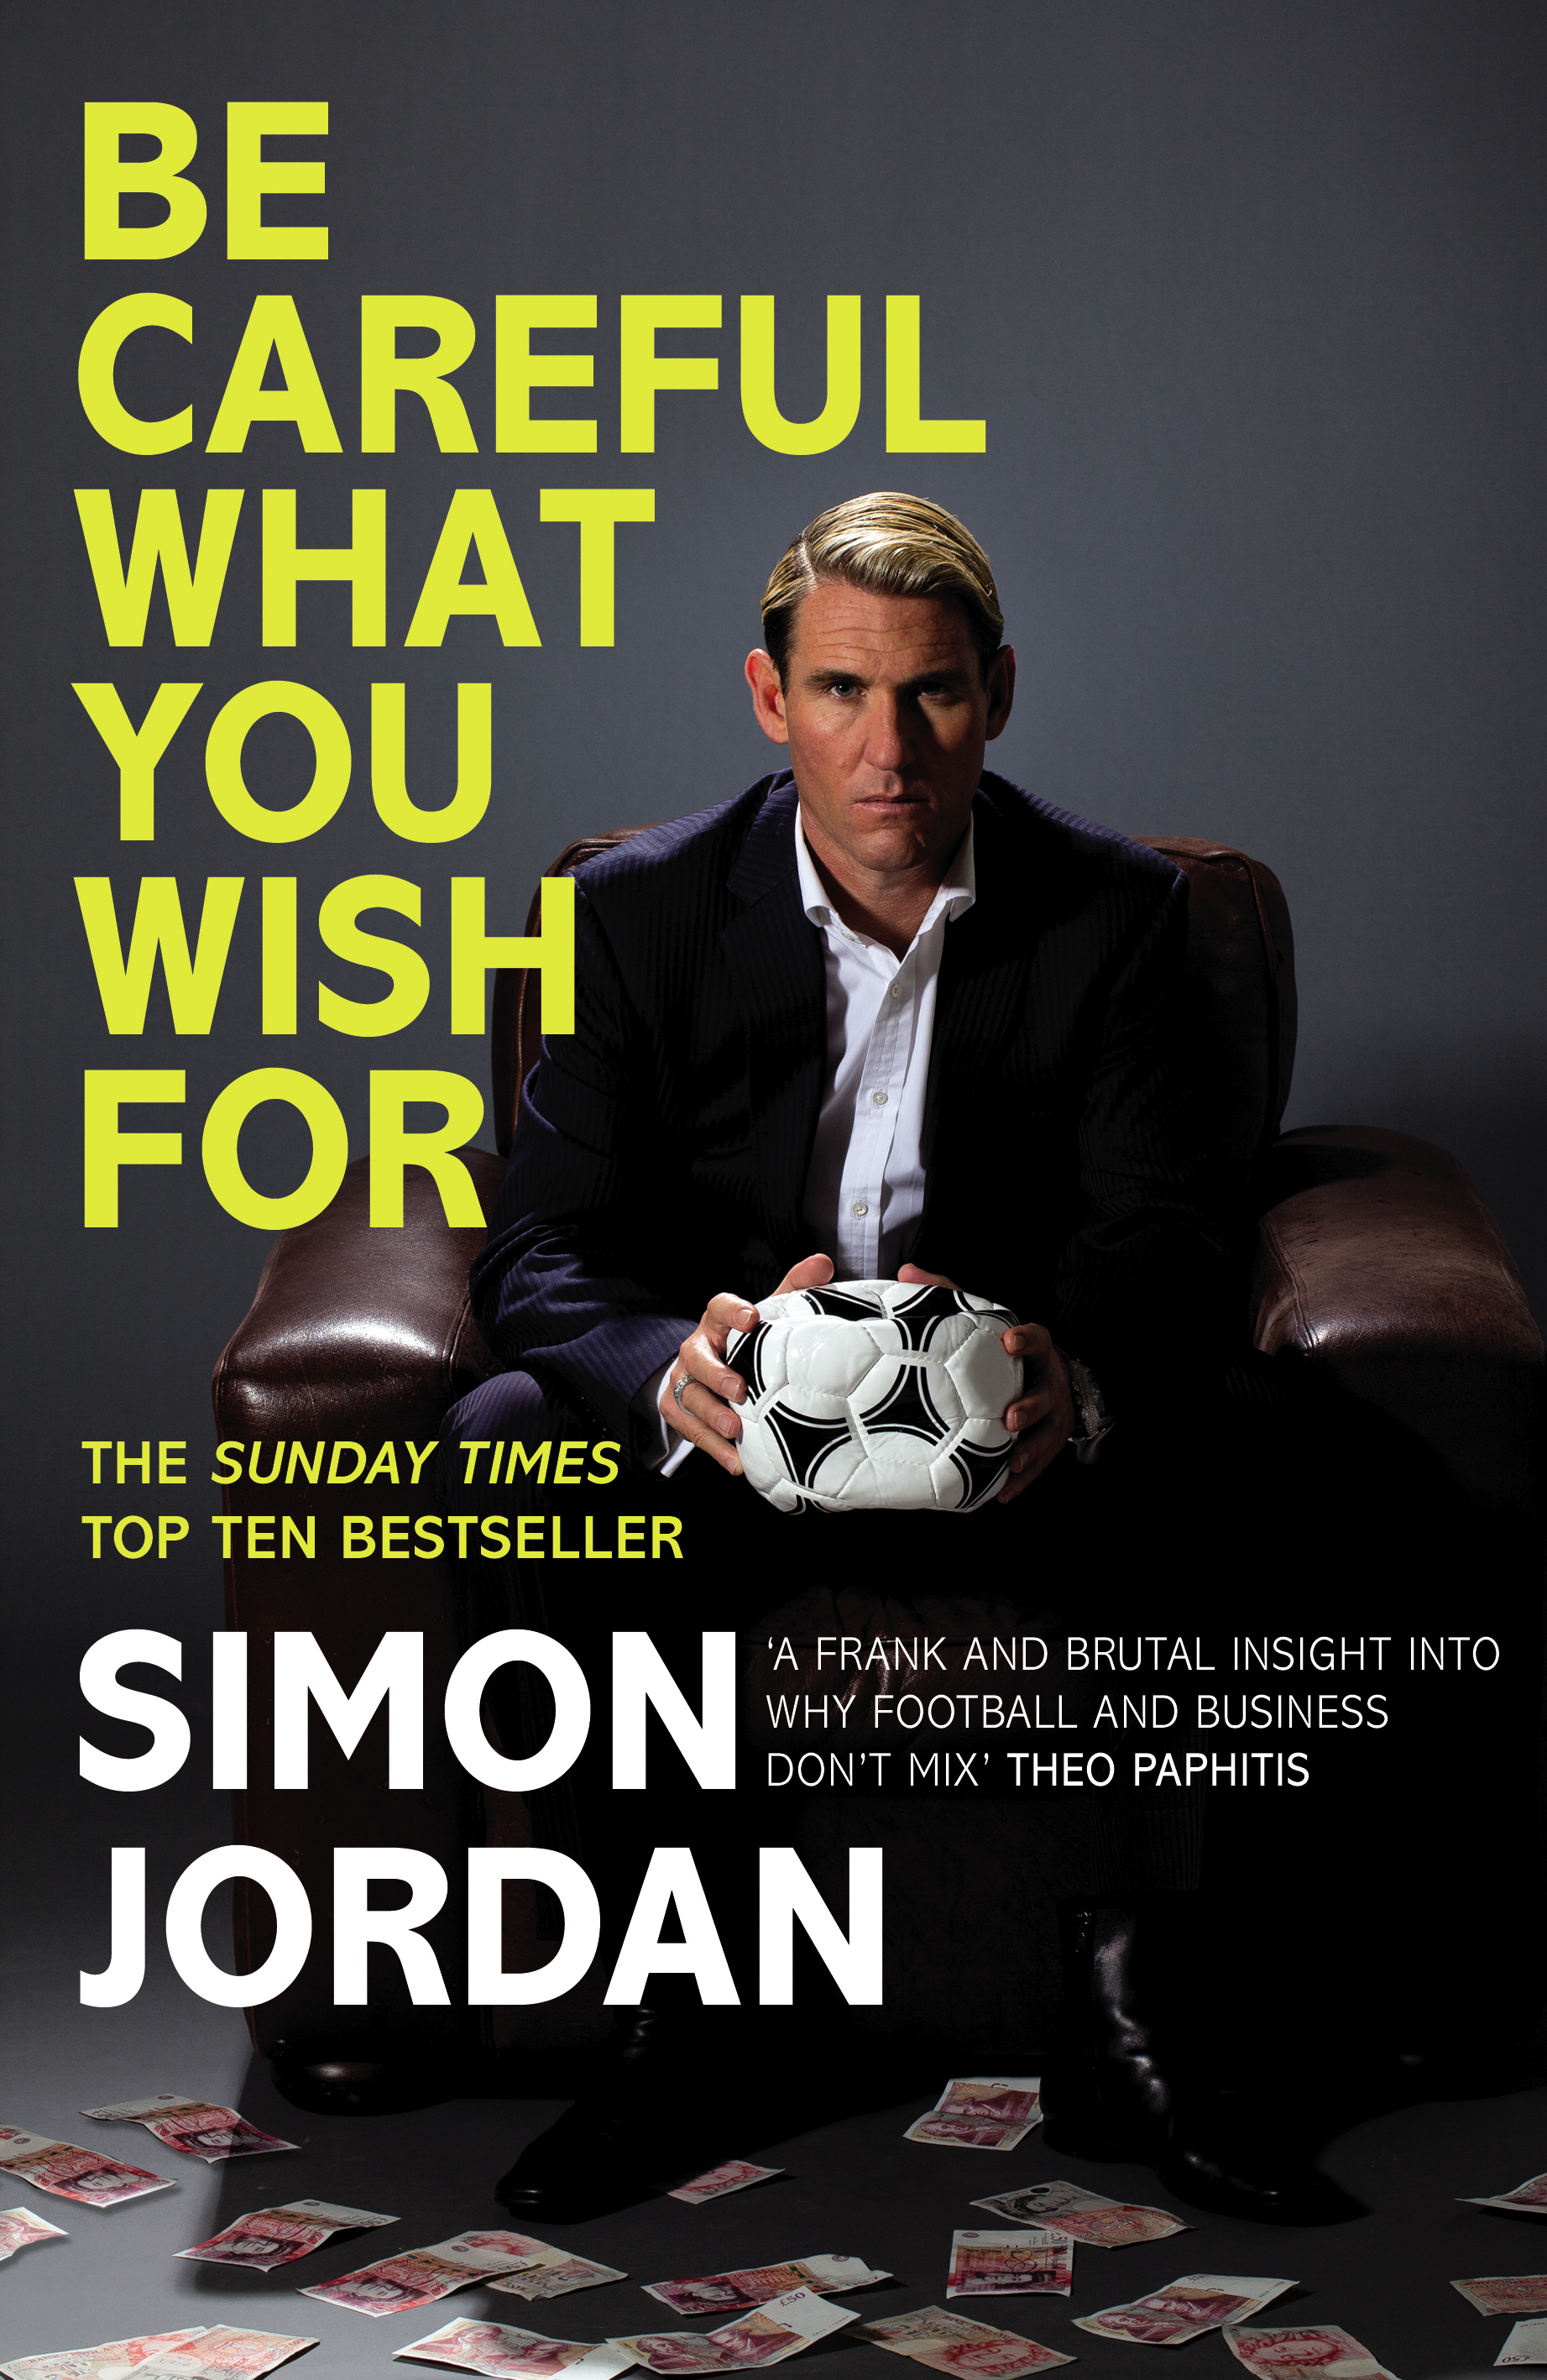 Download Ebook Be Careful What You Wish For by Simon Jordan Pdf